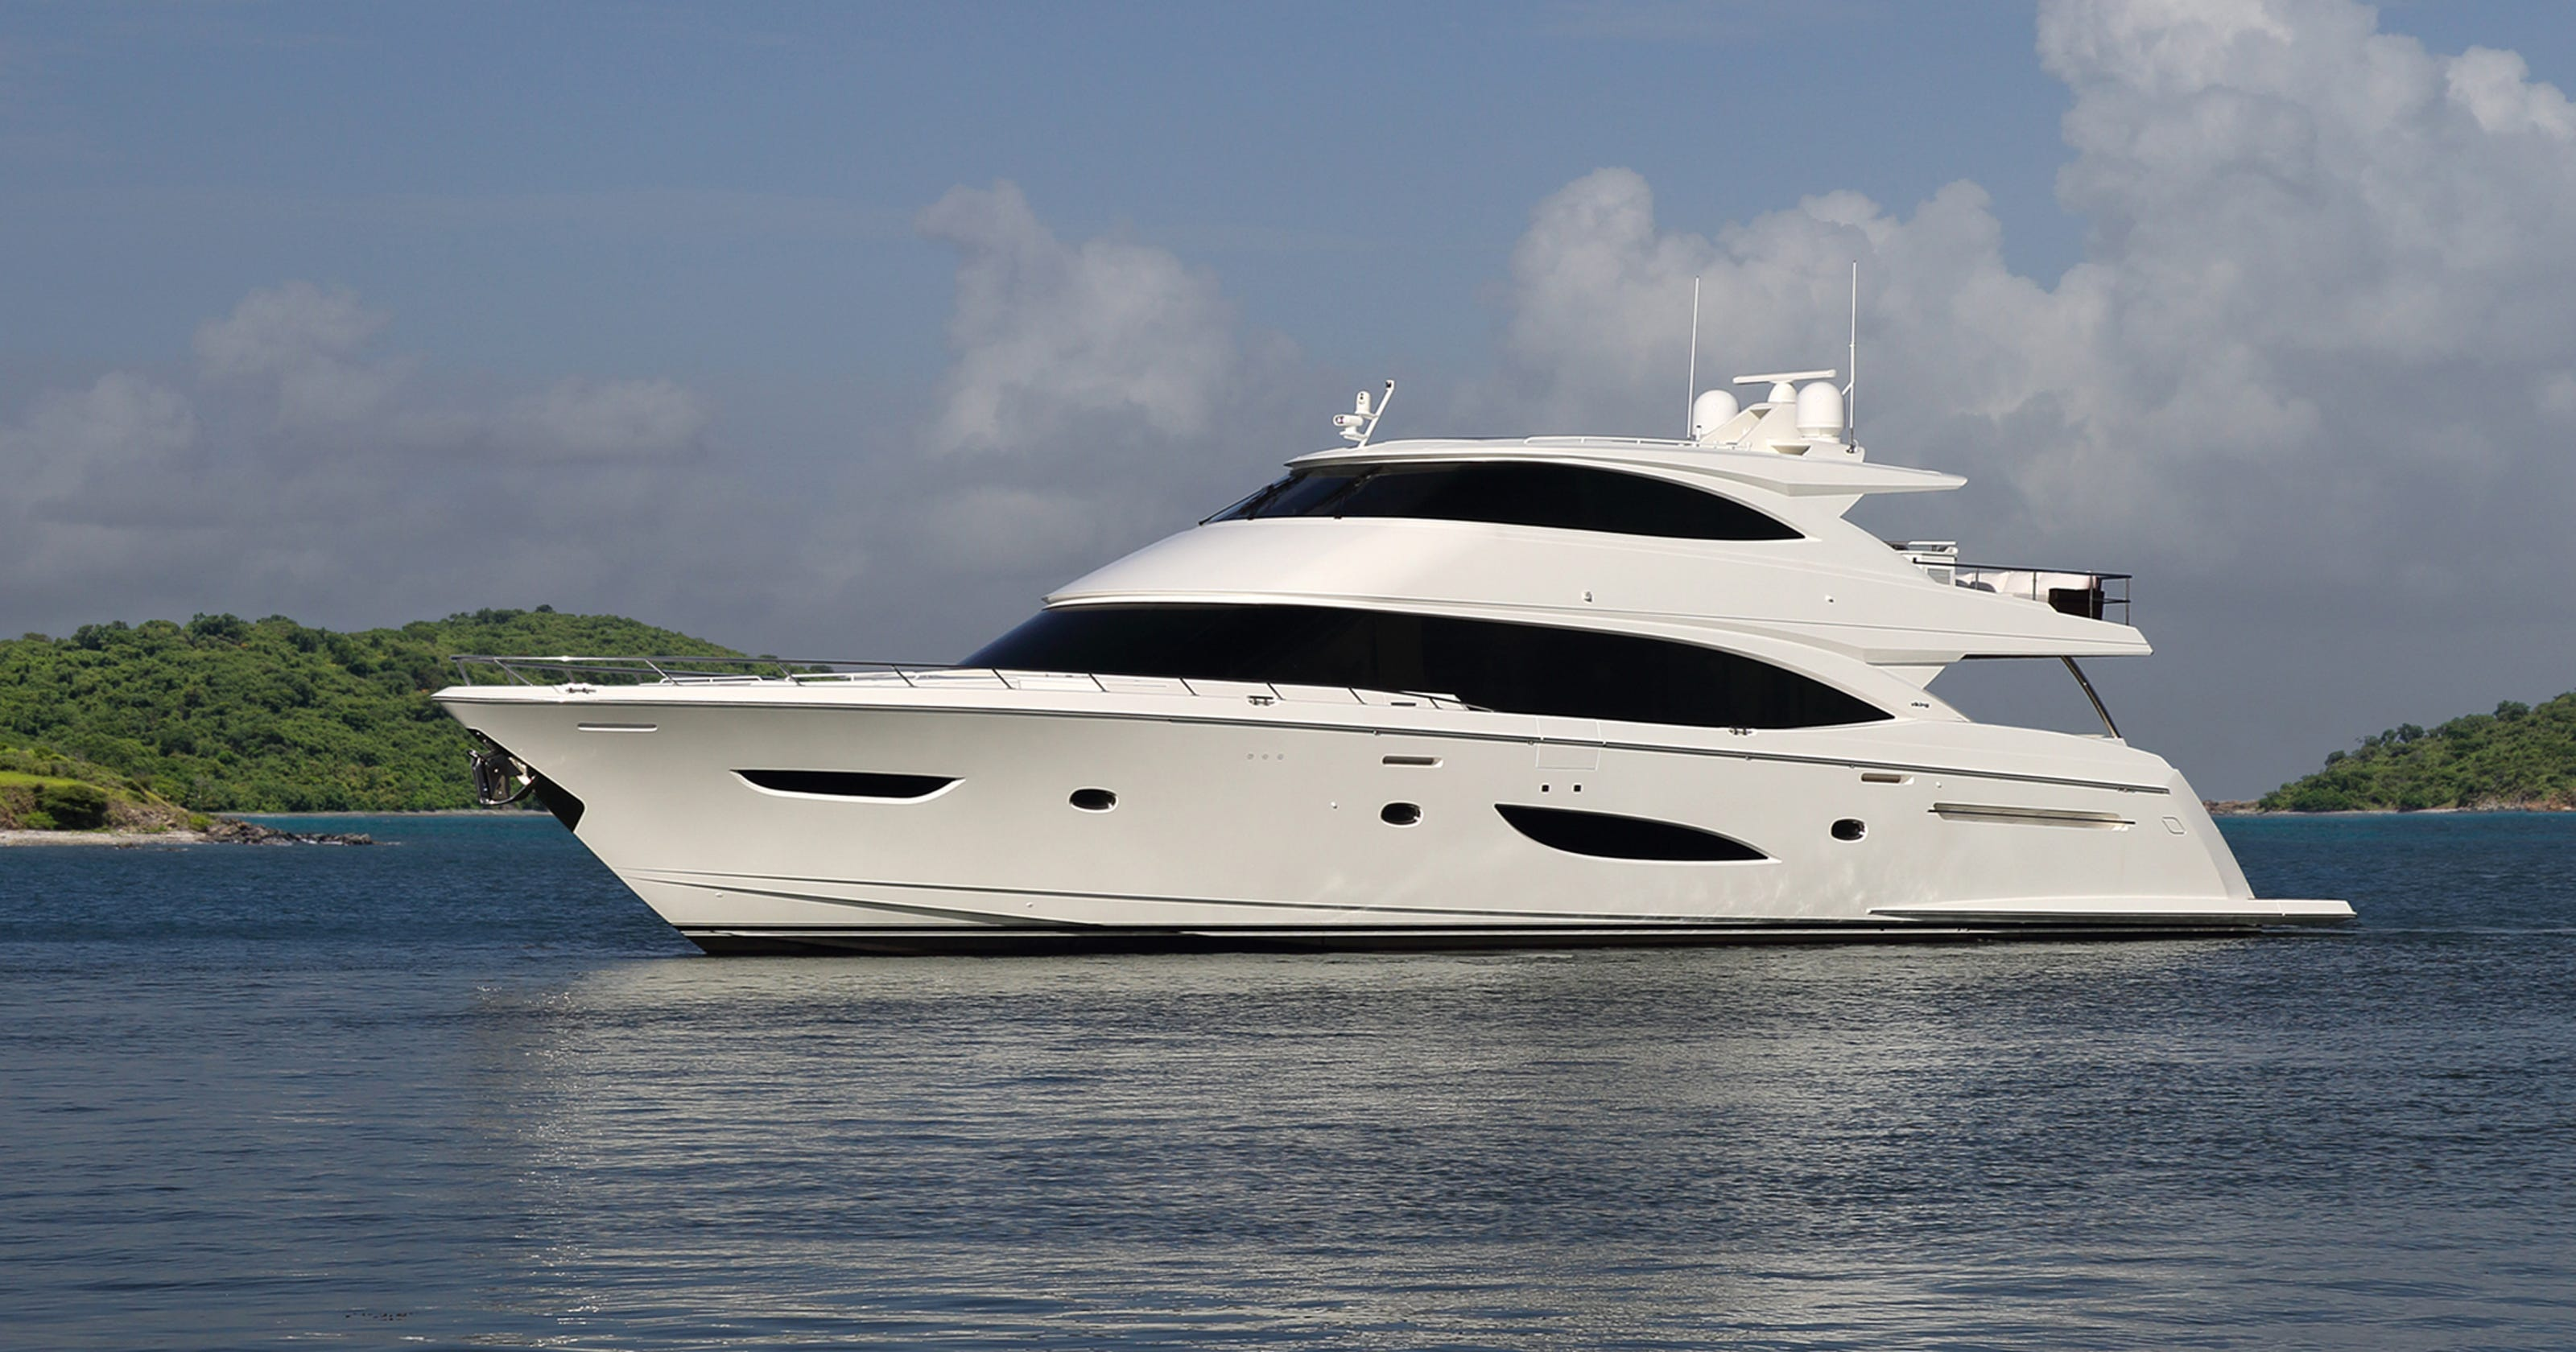 Sea Ray to lay off 380 workers  This yacht company wants to